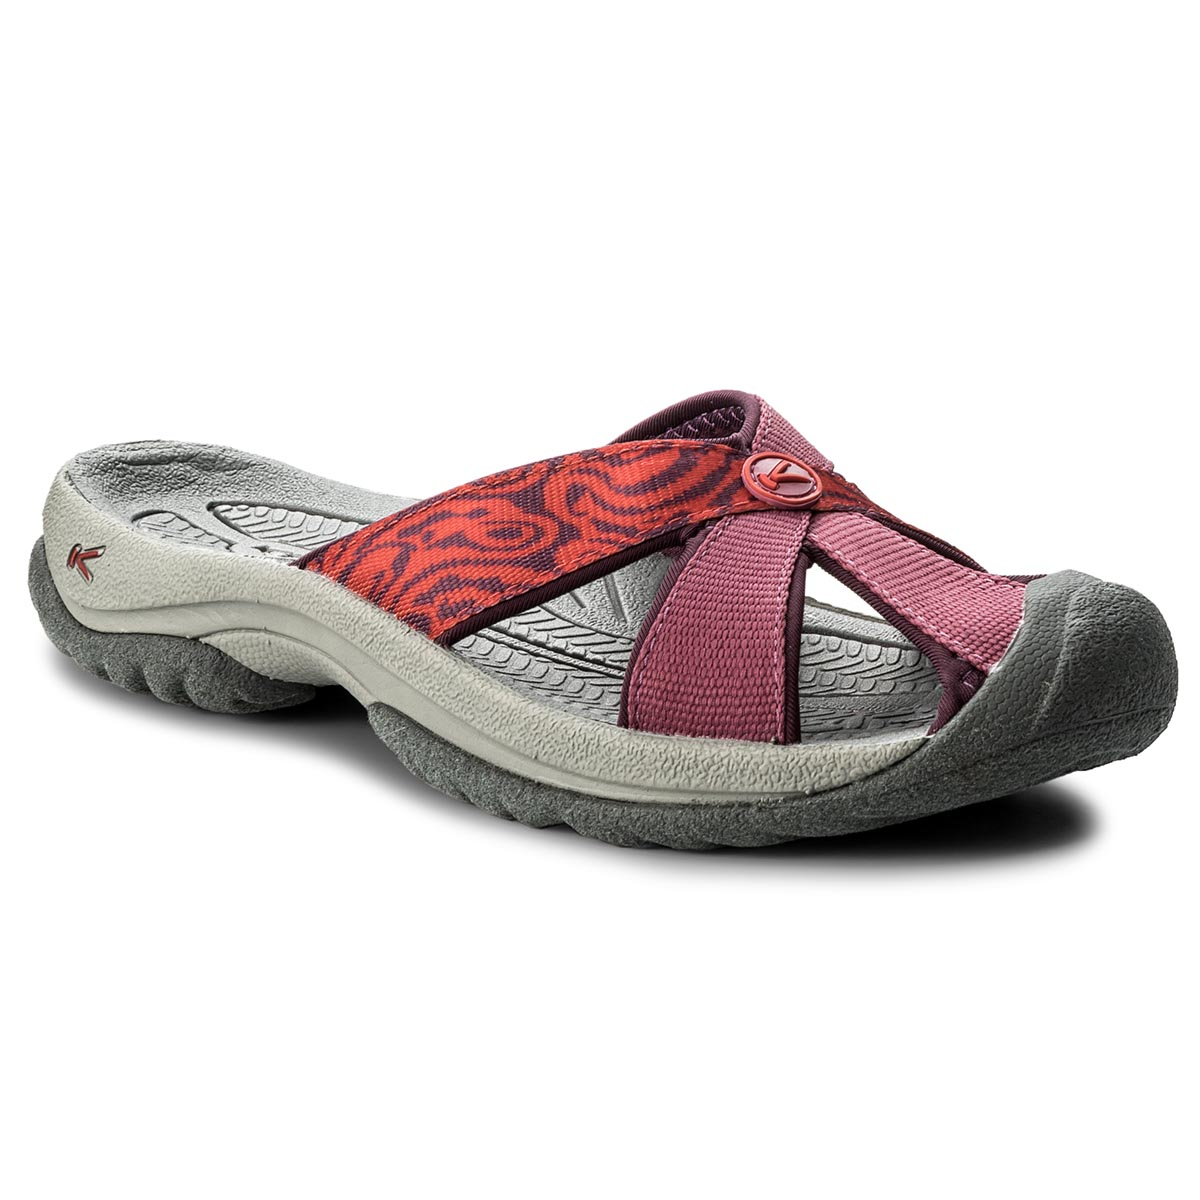 Klapki KEEN - Bali 1018224 Red Violet/Boysberry